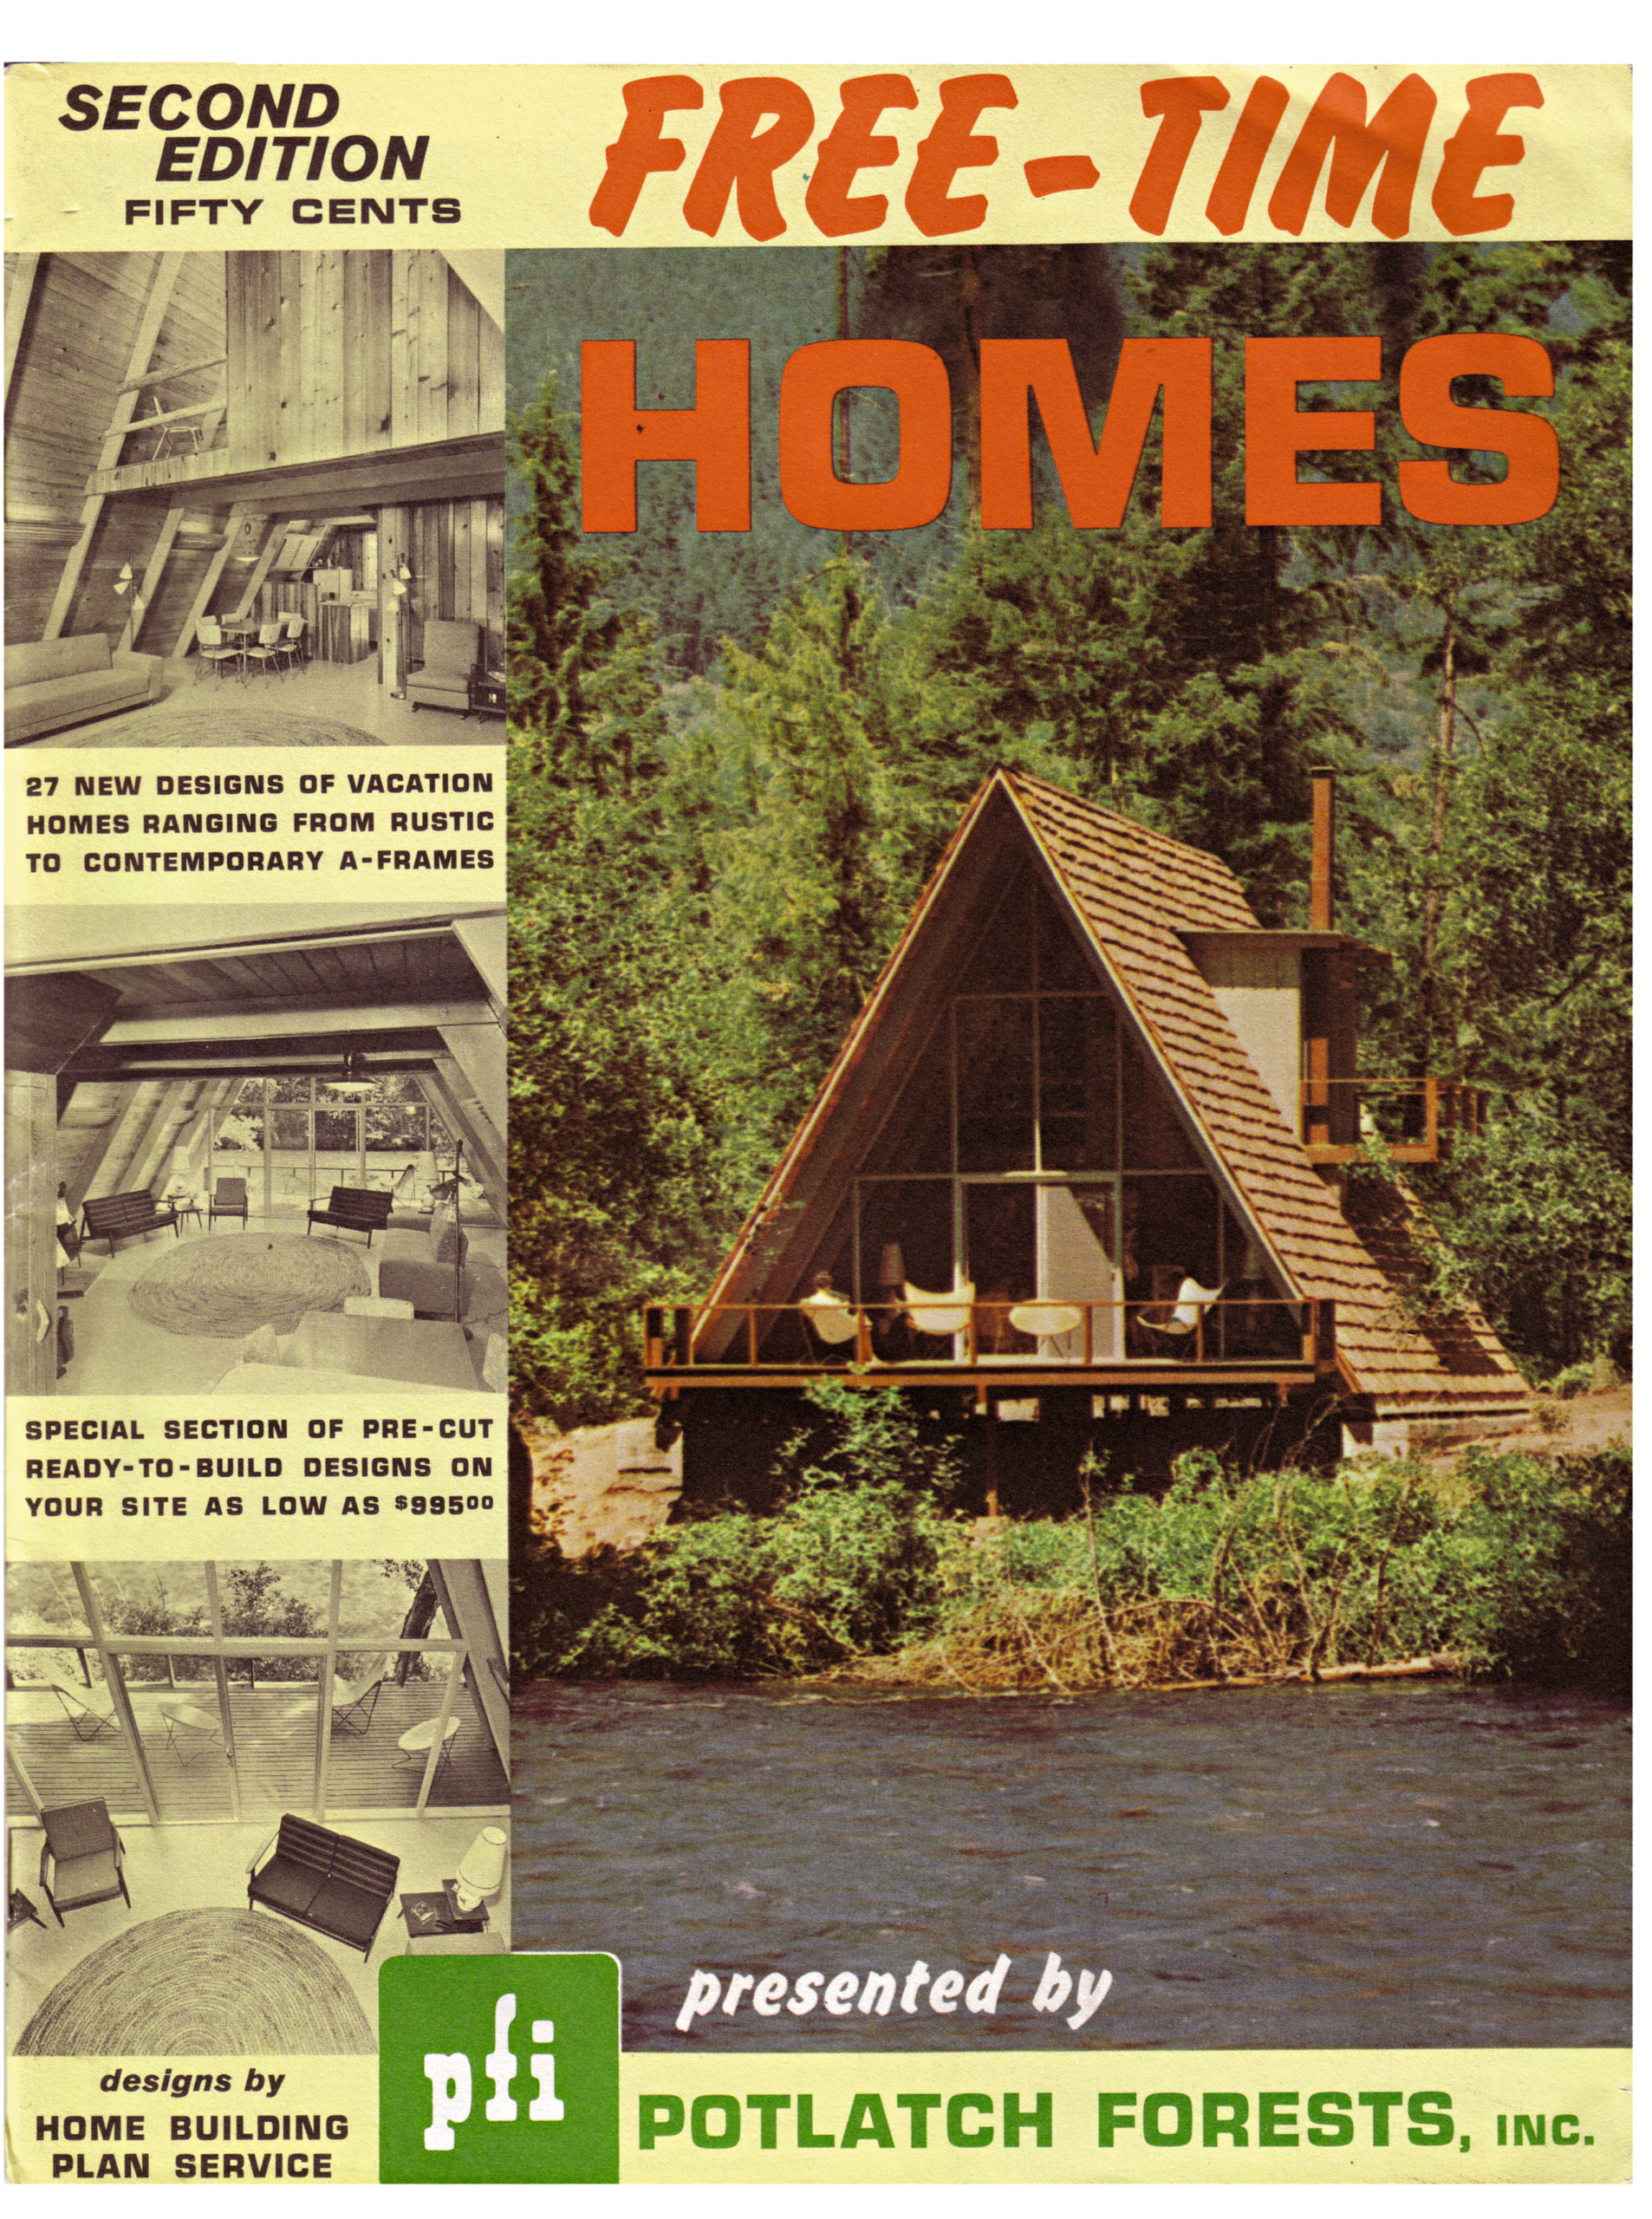 Long Out Of Print A Frame Returns To Satiate America S Lust For Triangular Homes